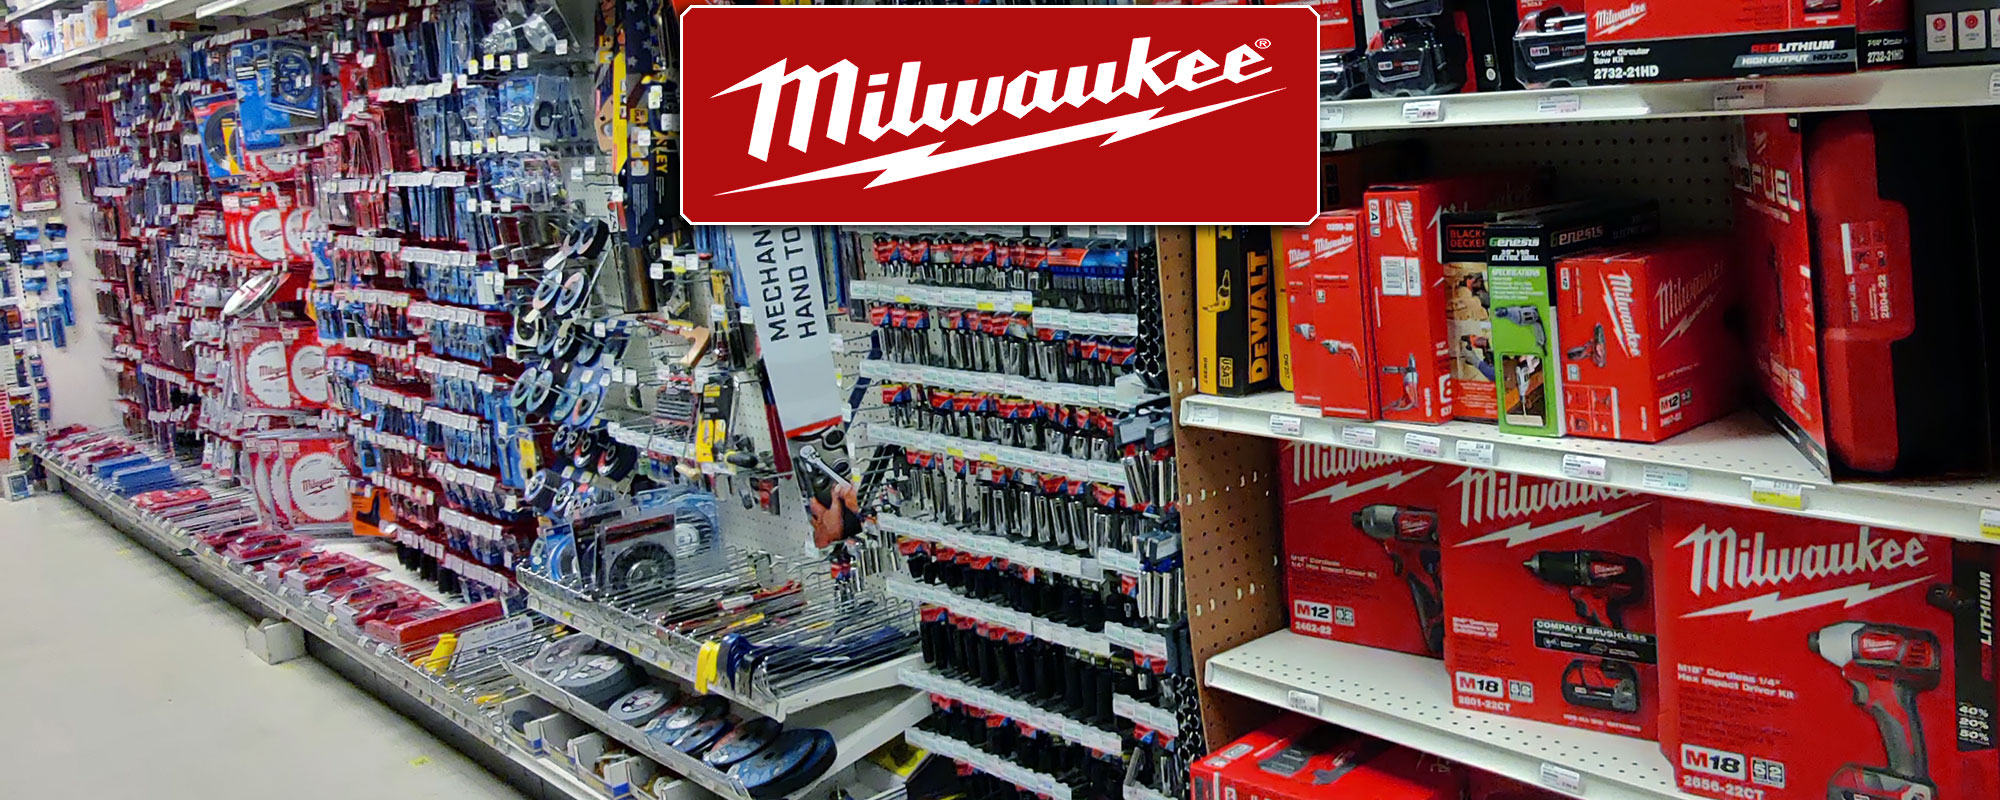 Shop and Buy Milwaukee Tools Brand at Harbor Hardware Store in Door County, WI